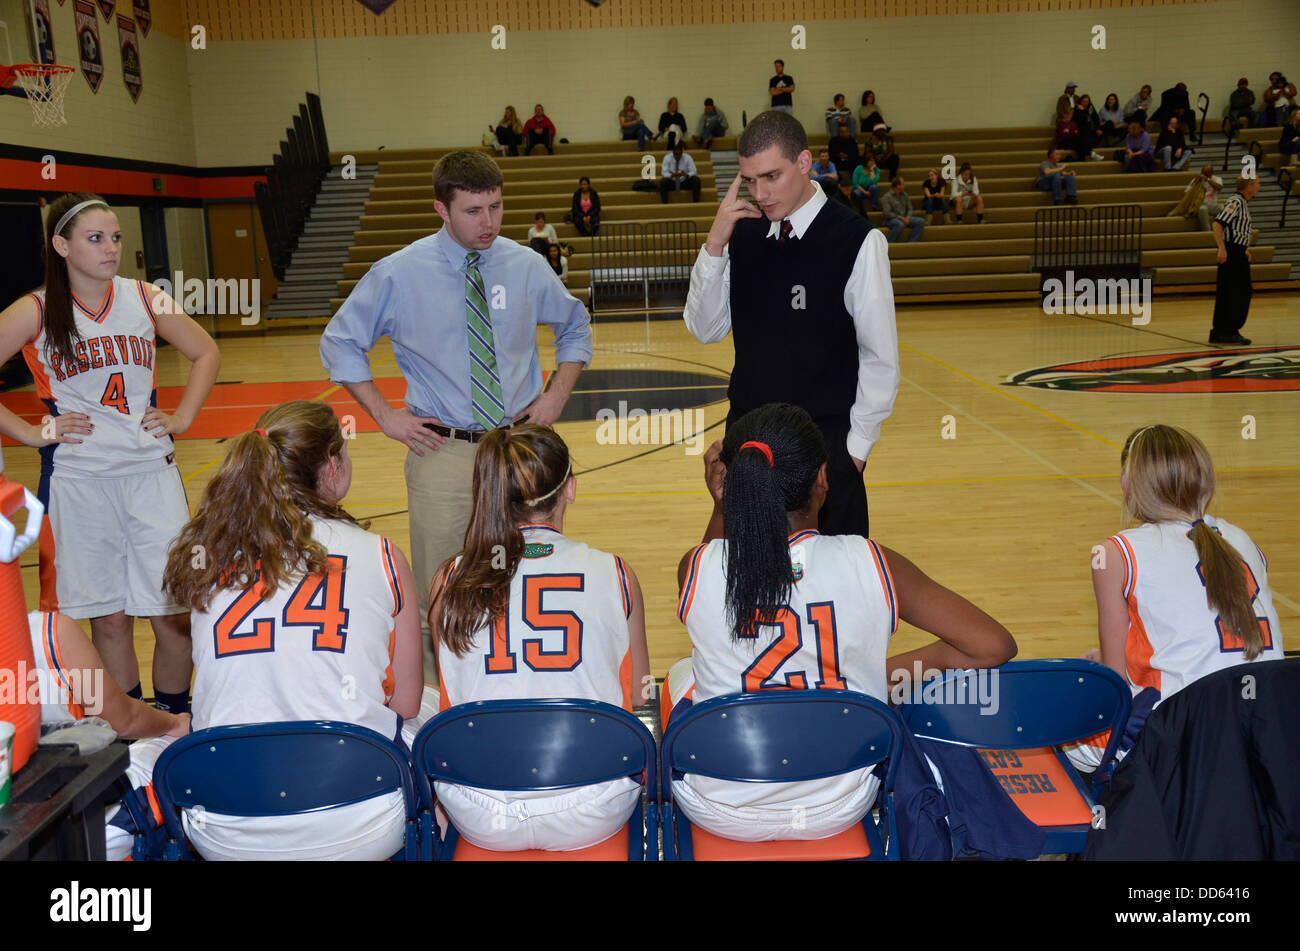 Coach talking his players at a high school basketball game in Fulton, Maryland - Stock Image